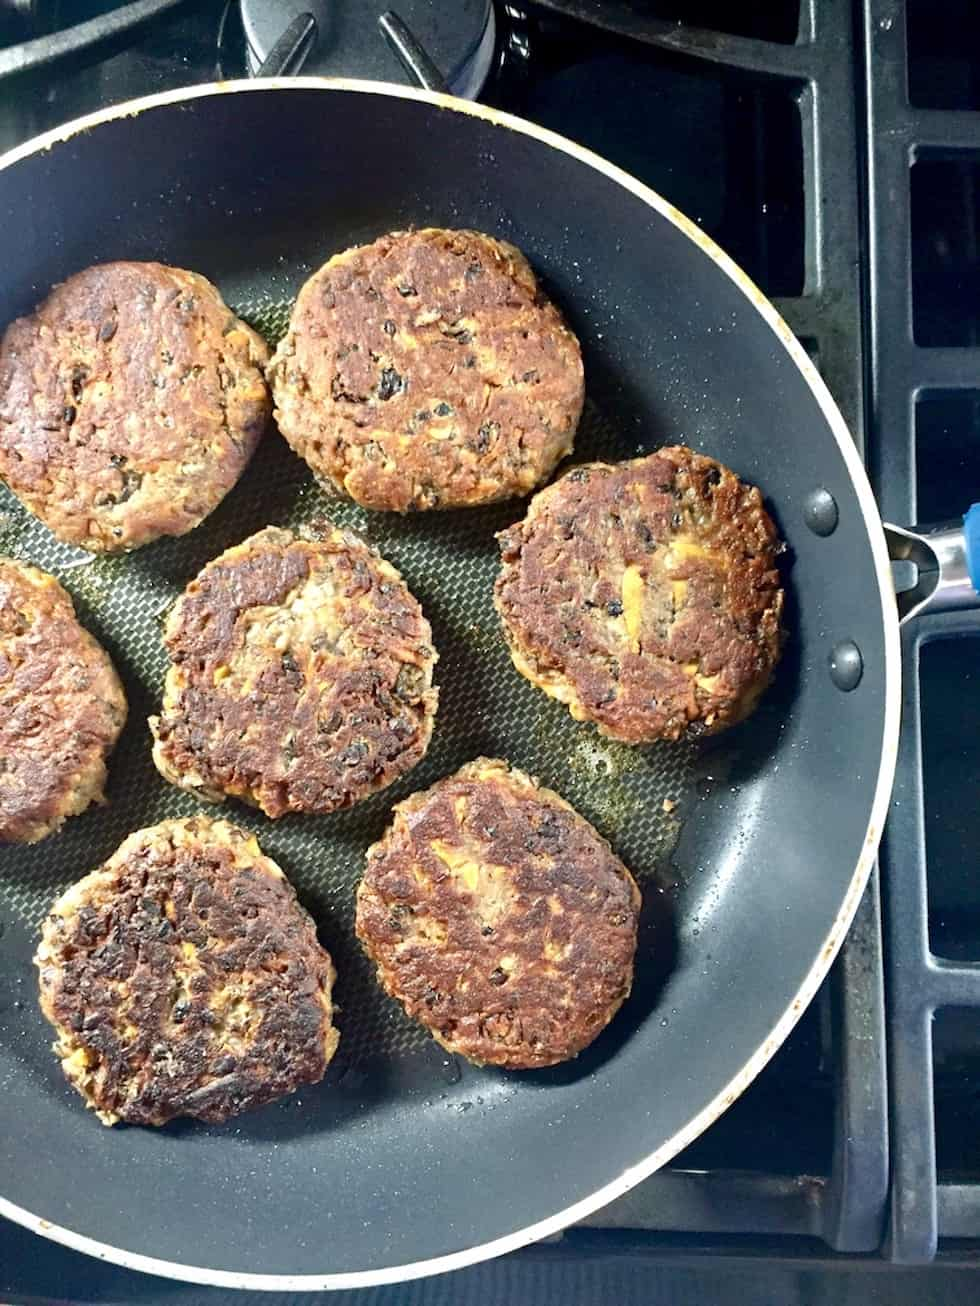 Vegetarian bean burgers in a skillet on a gas stove.